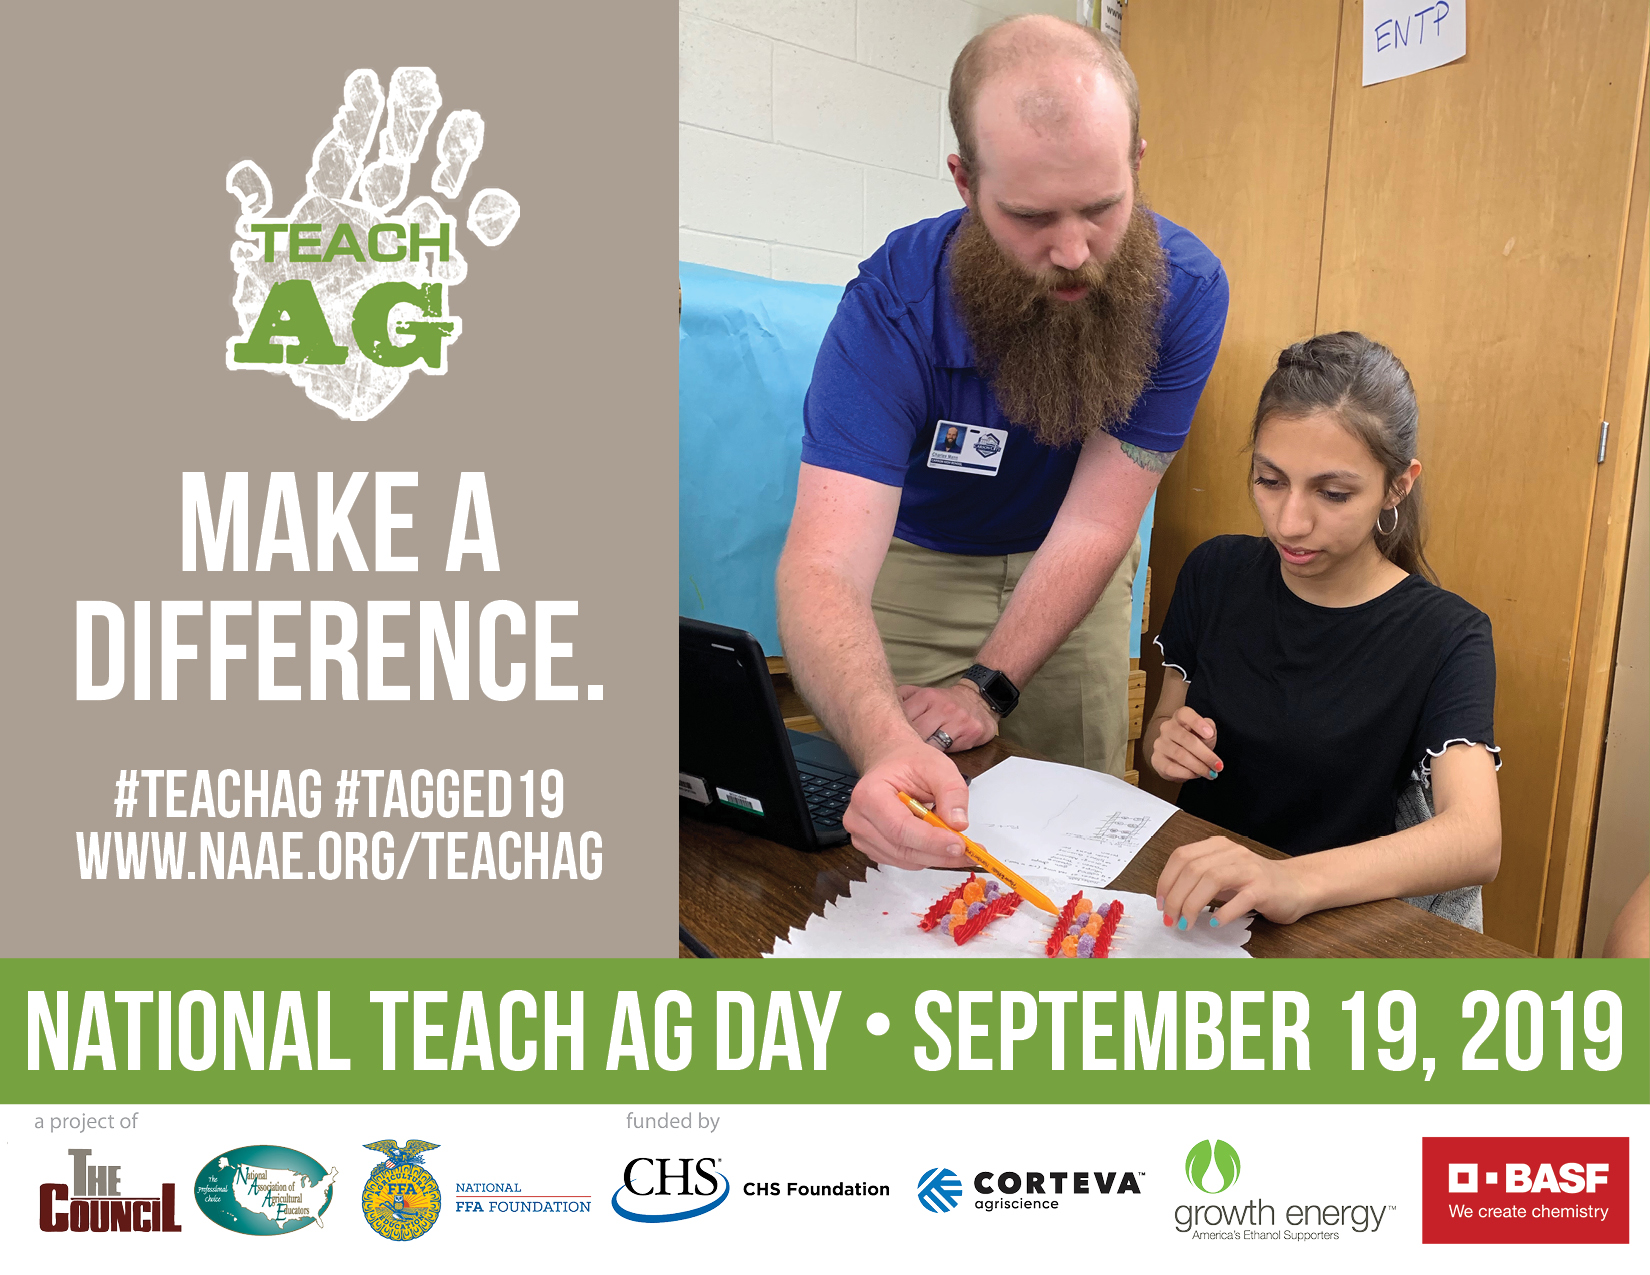 Celebrating Agriculture Teachers on Teach Ag Day